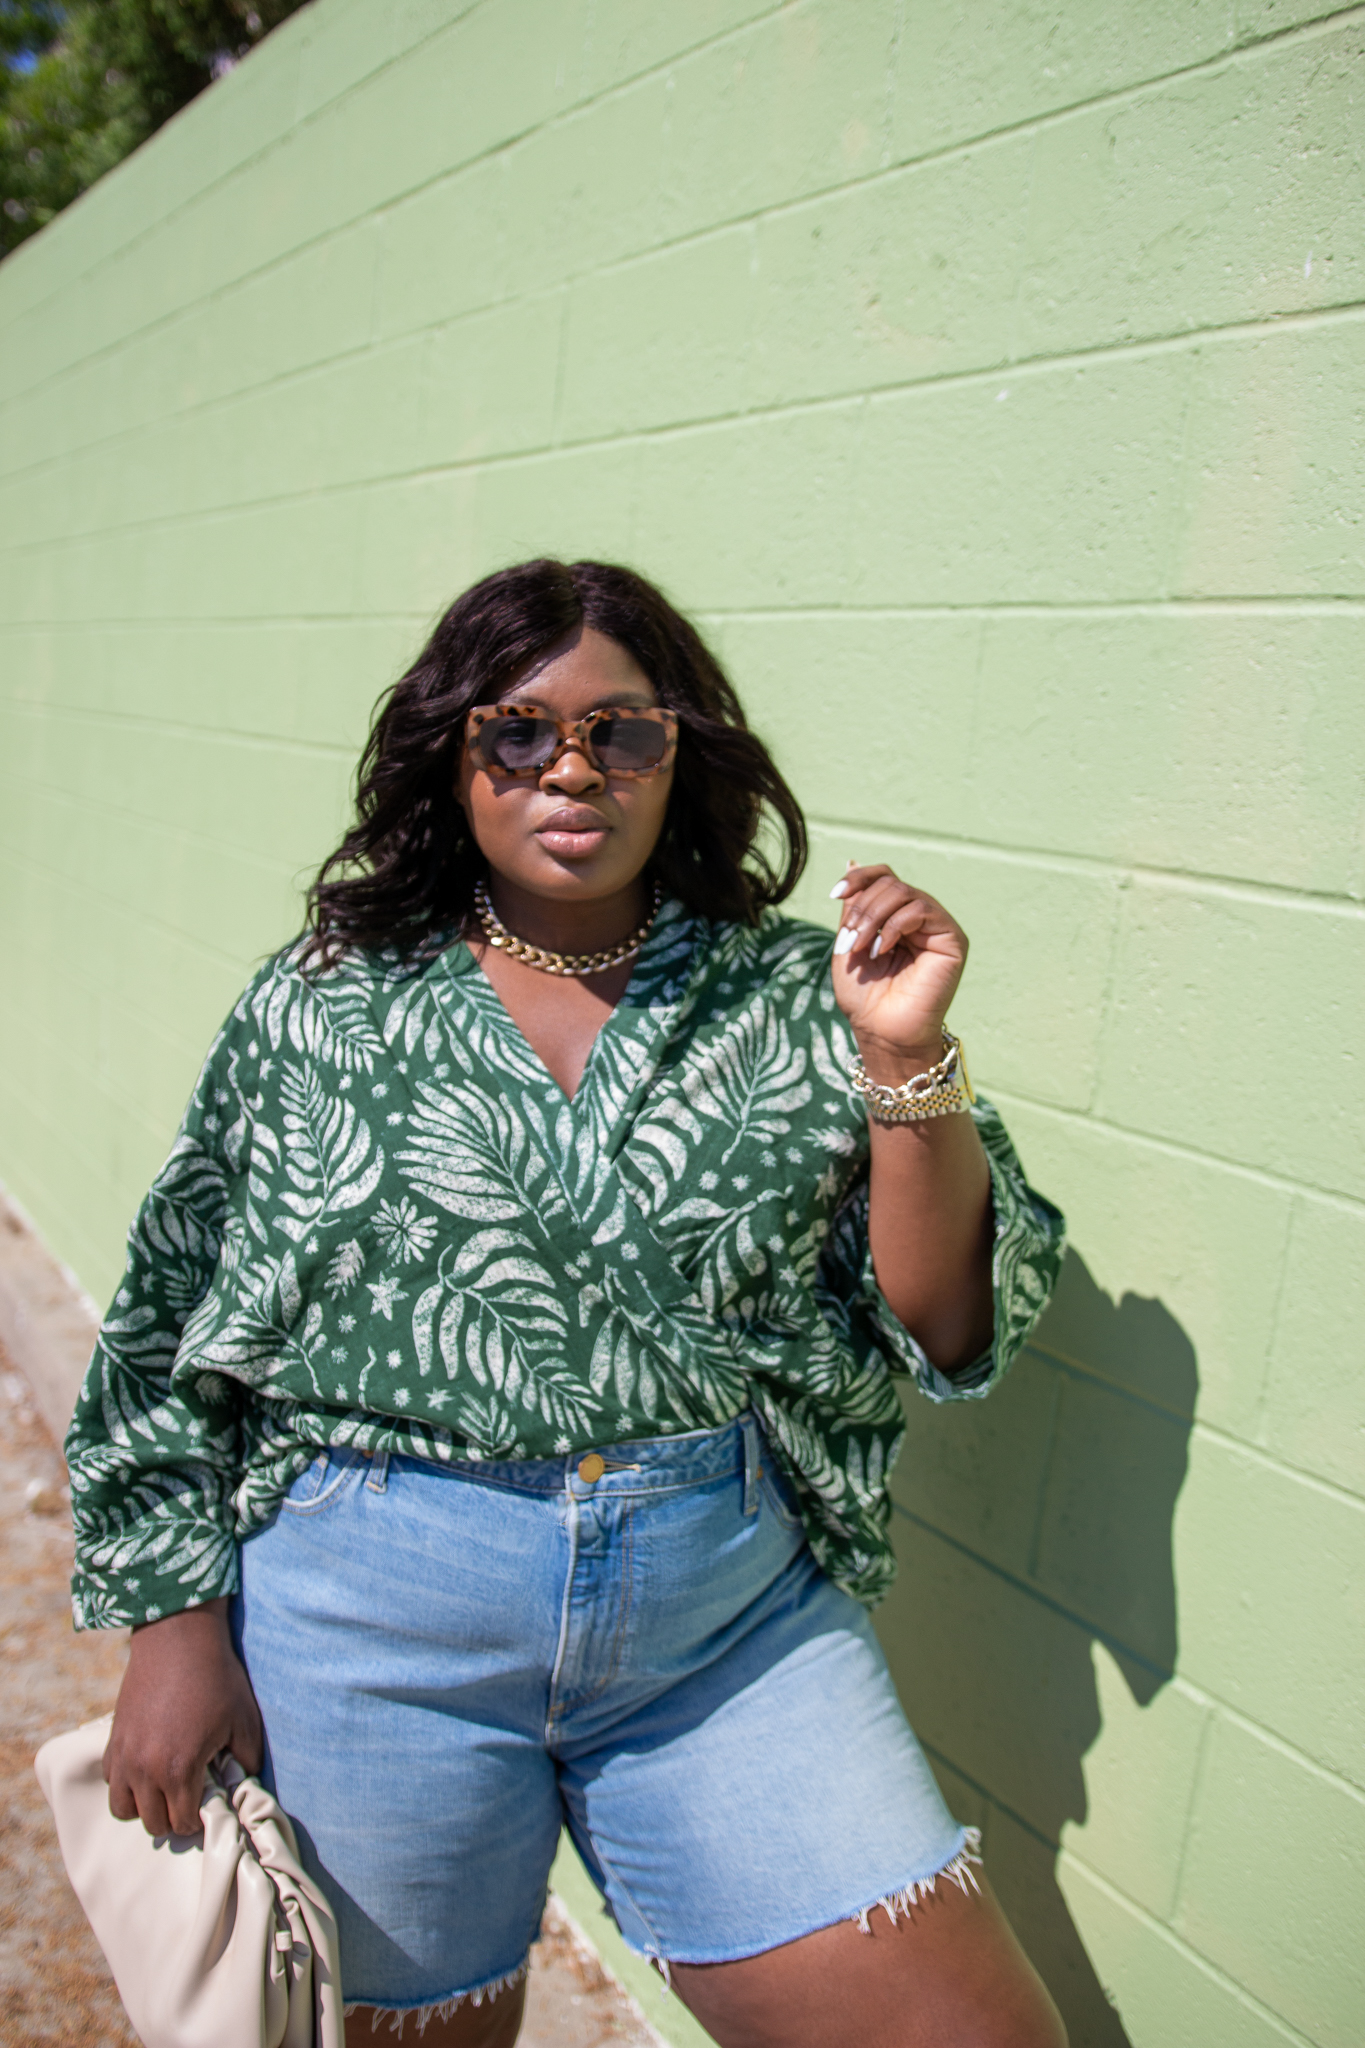 summer Basics how to style a kimono ft Targetstyle from supplechic a fashion and lifetstyle blog based out of baltimore